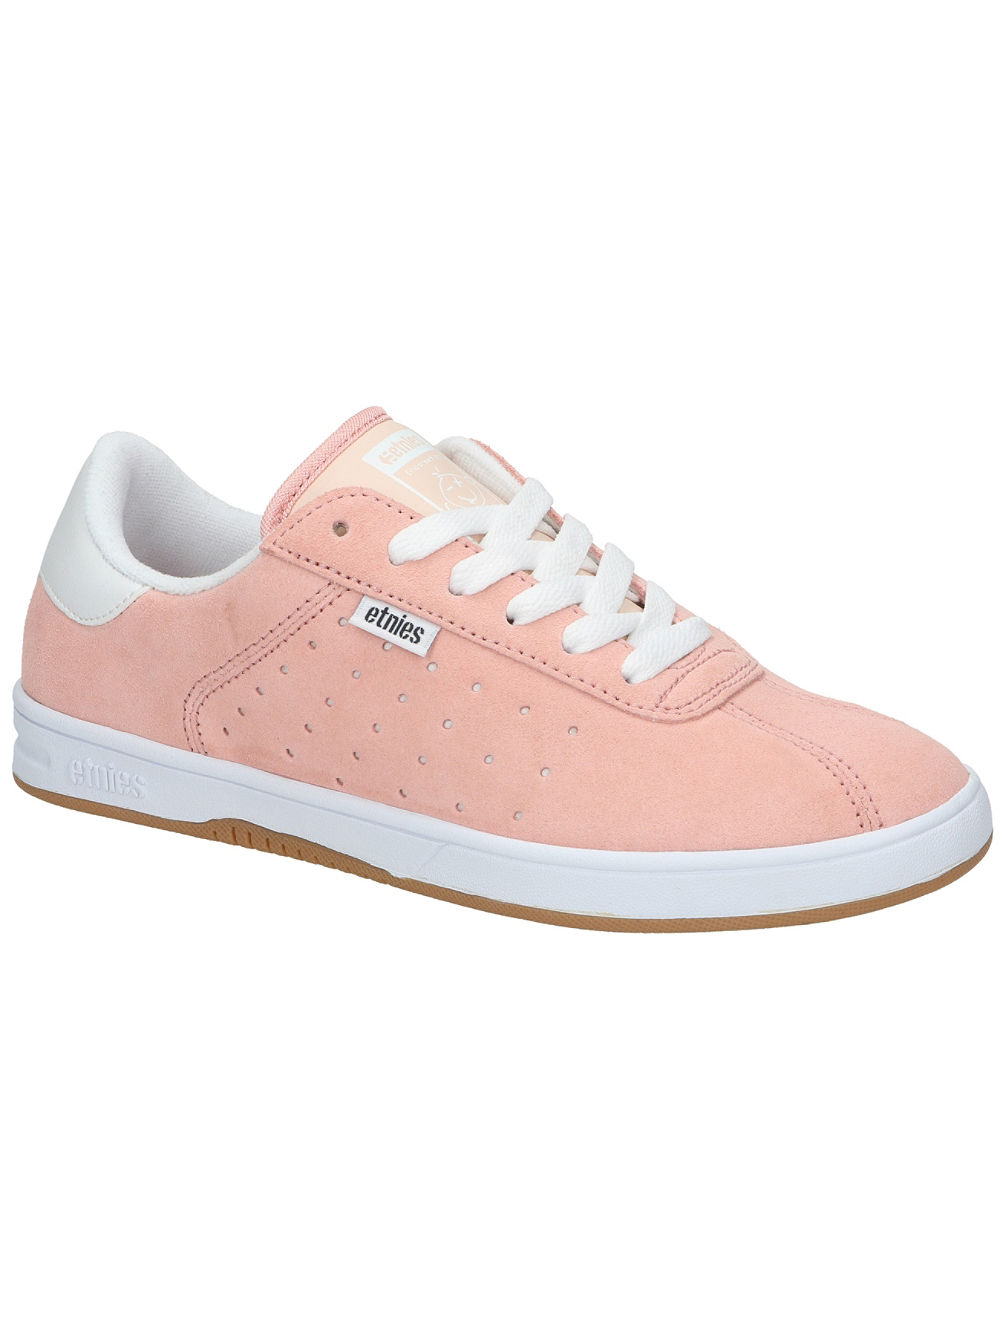 The Scam Sneakers Women